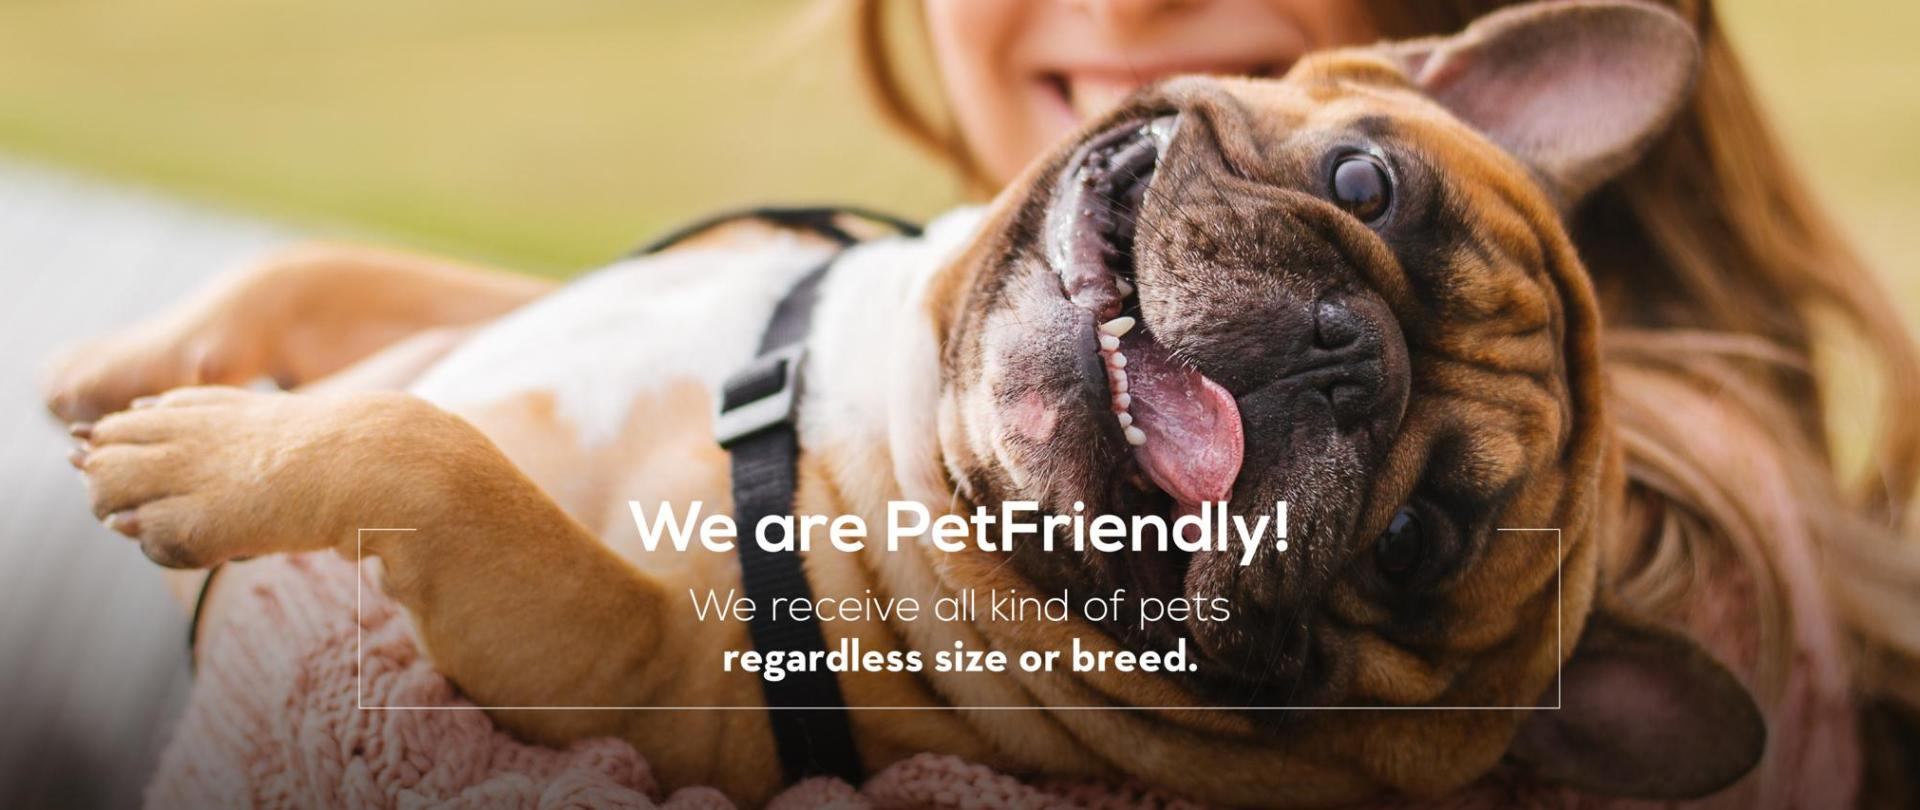 www-jazzapartments-com-somos-pet-friendly-ingles.png